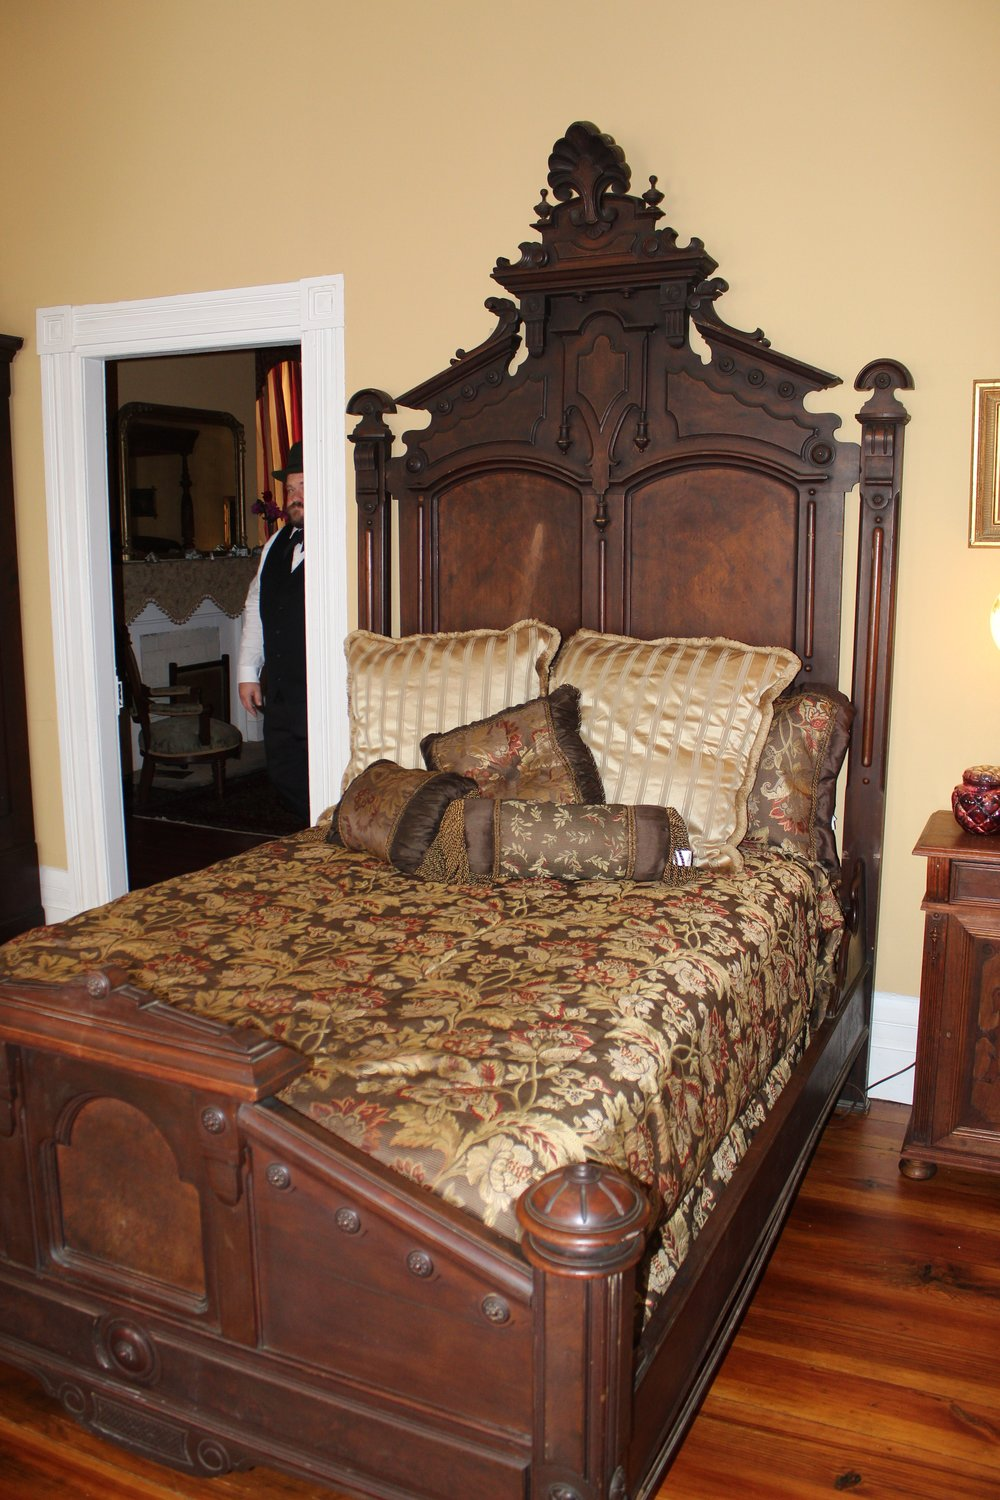 This bed was used by the owner in the 1860s and has been in the house ever since.